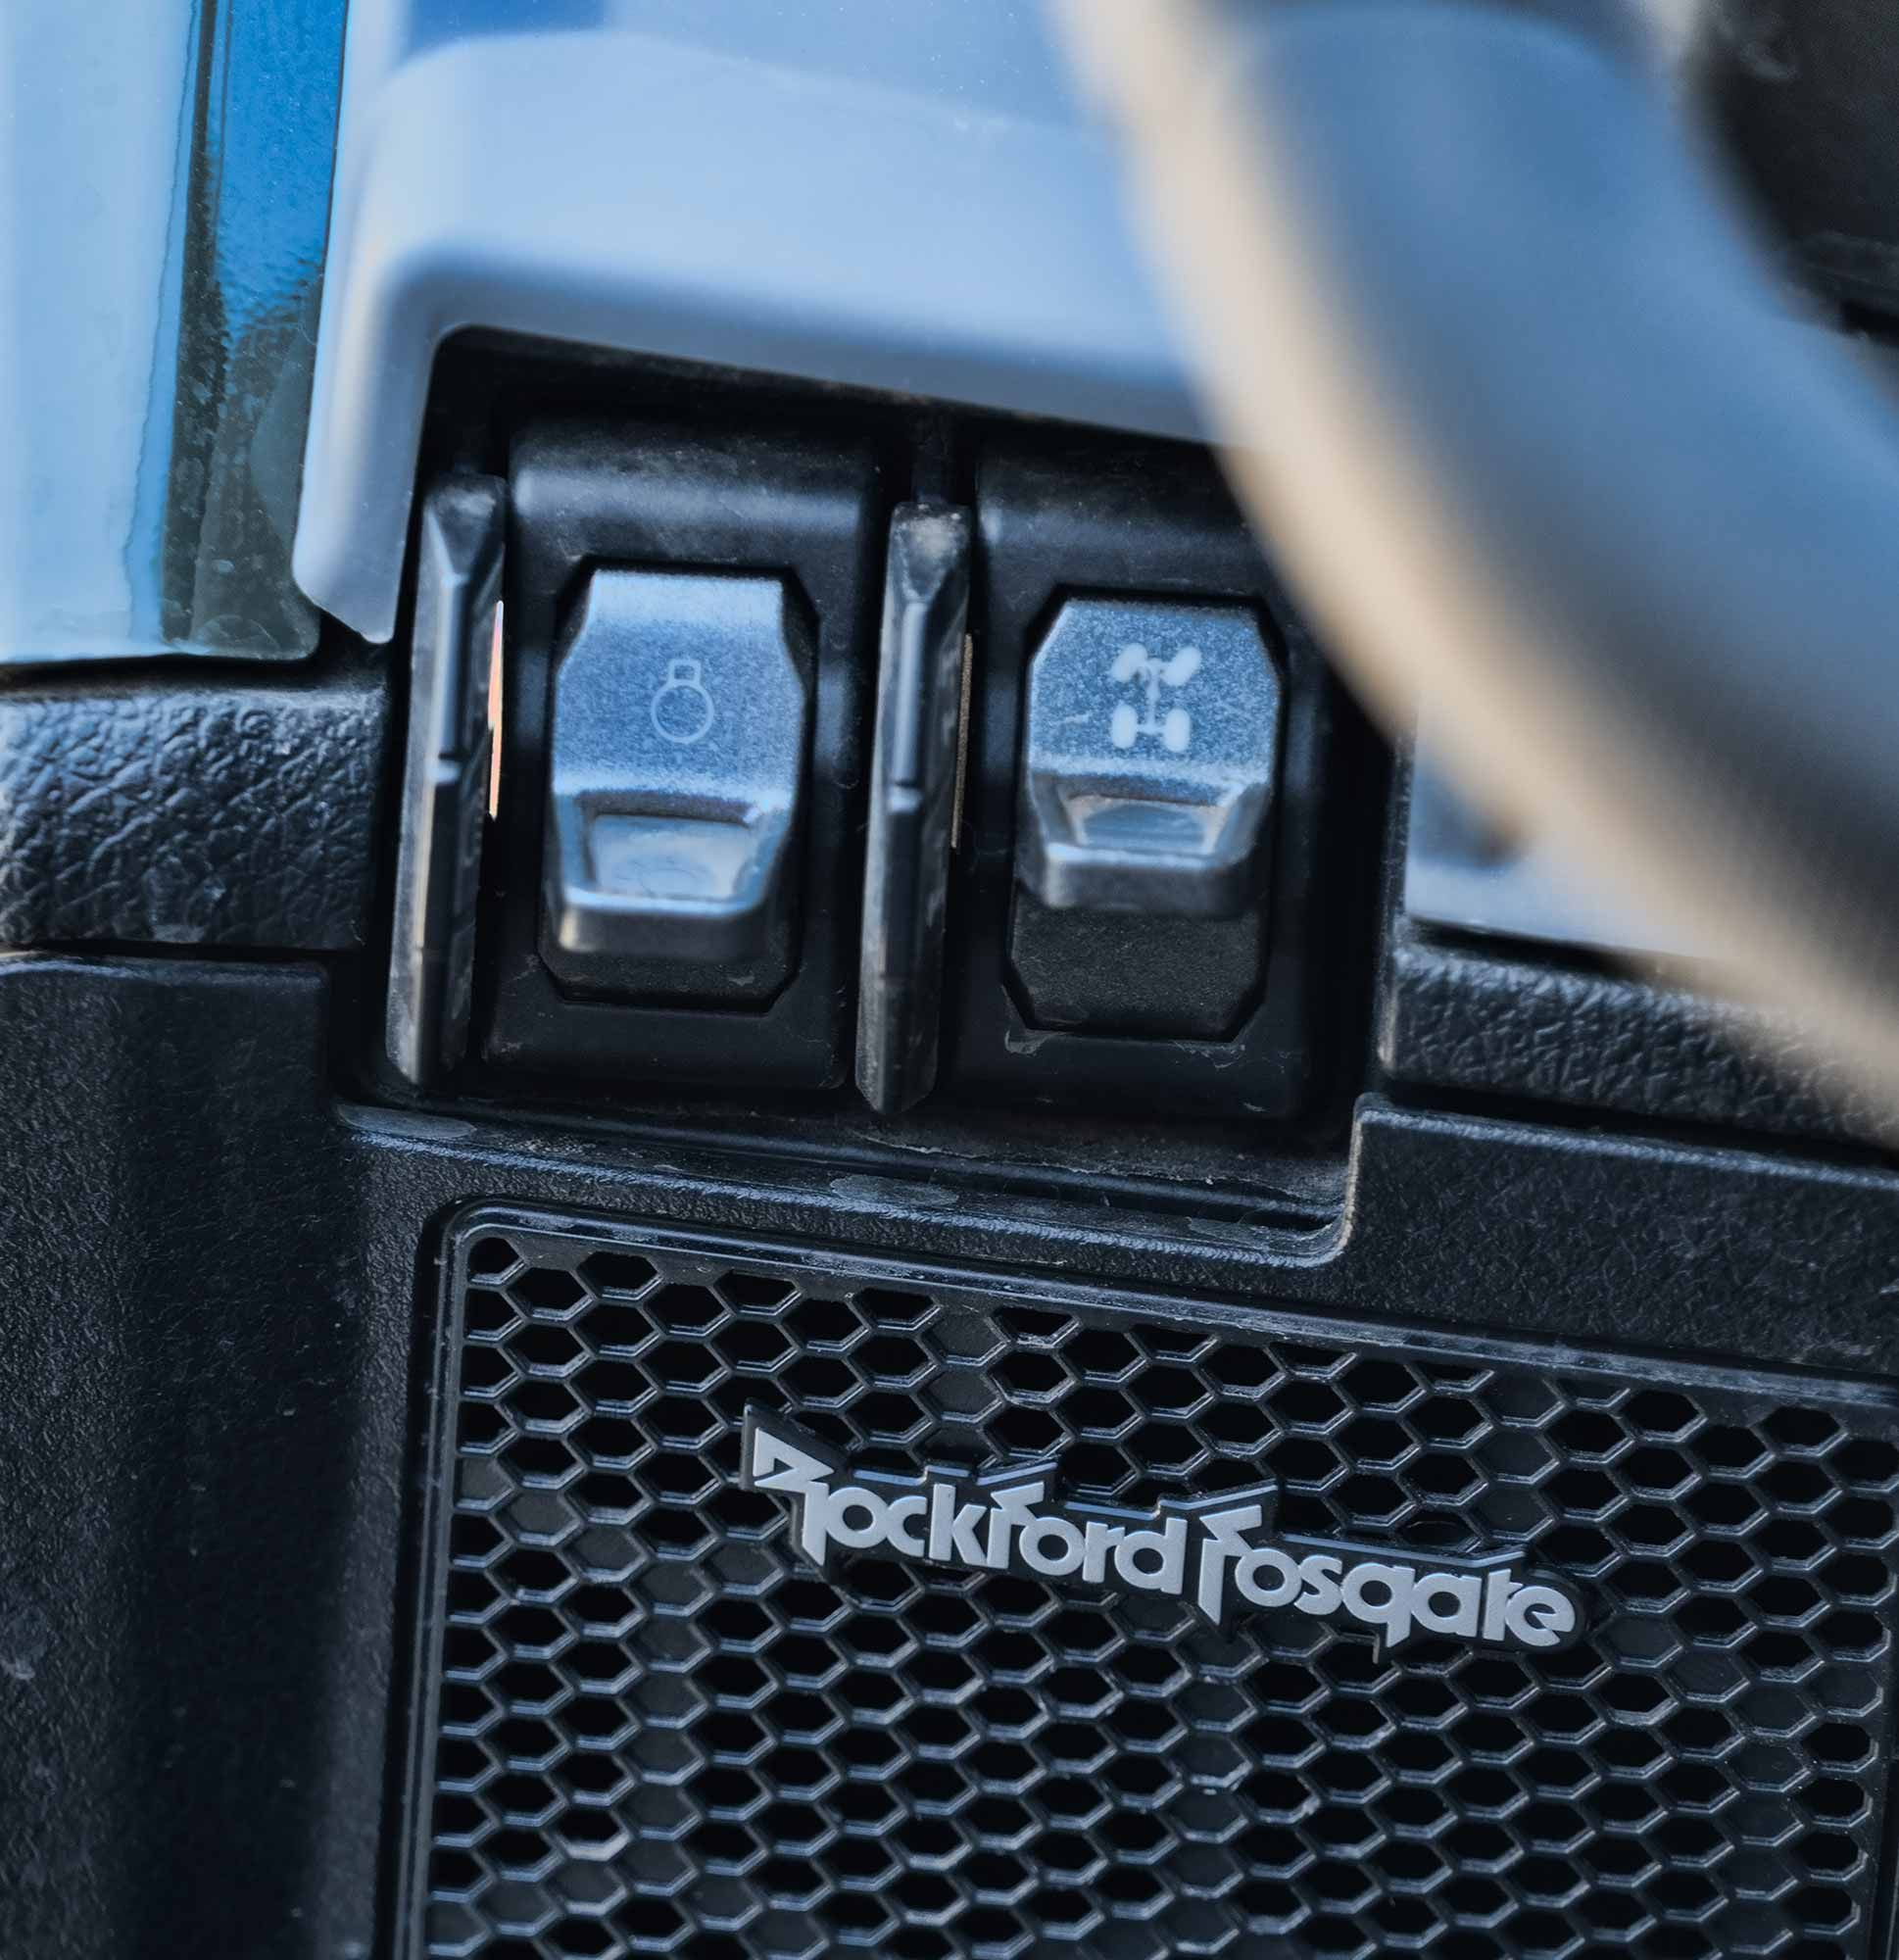 Upgraded switch gear and factory-integrated audio options make the Pro XP feel like a more well-rounded vehicle.